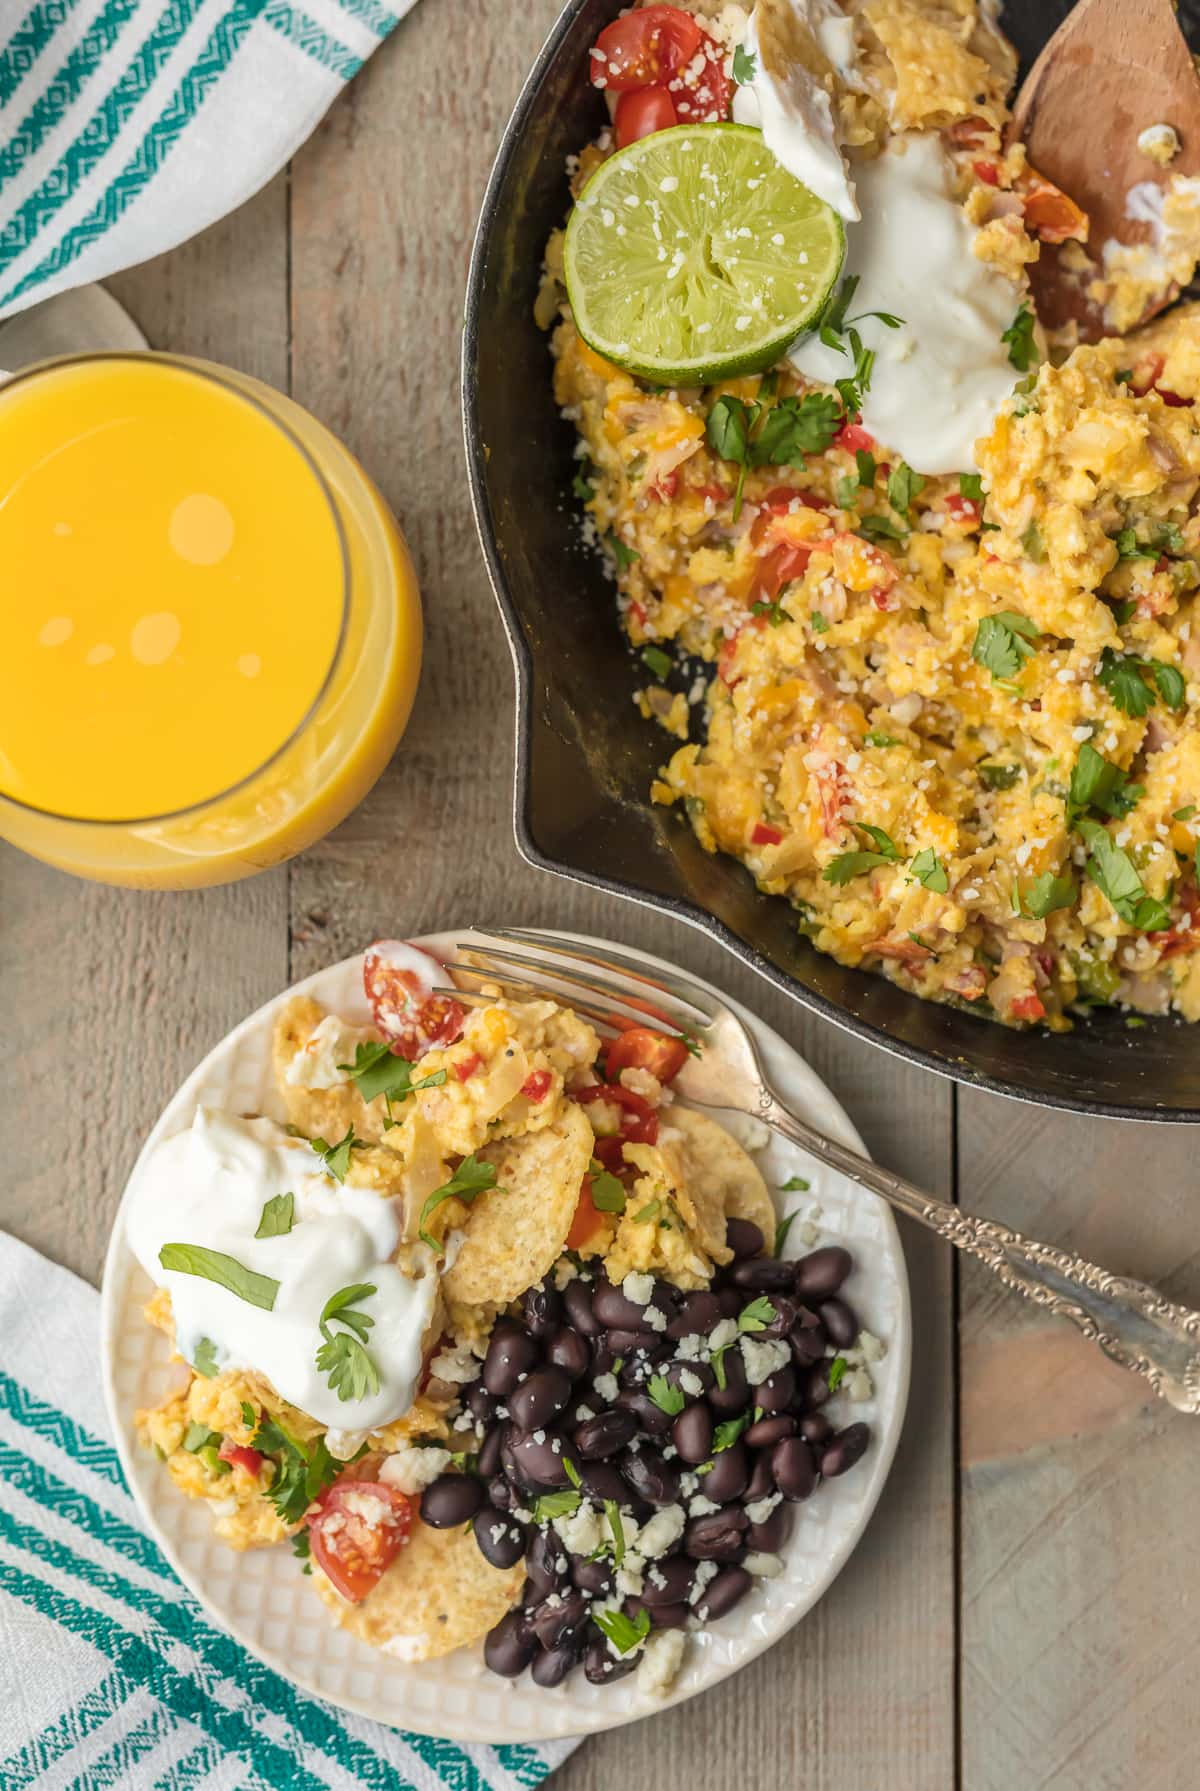 These CHEESY MIGAS are a family favorite breakfast recipe for Christmas morning! Scrambled eggs with lots of cheese, veggies, tortilla chips, and more. It's an easy skillet breakfast the entire family will love!